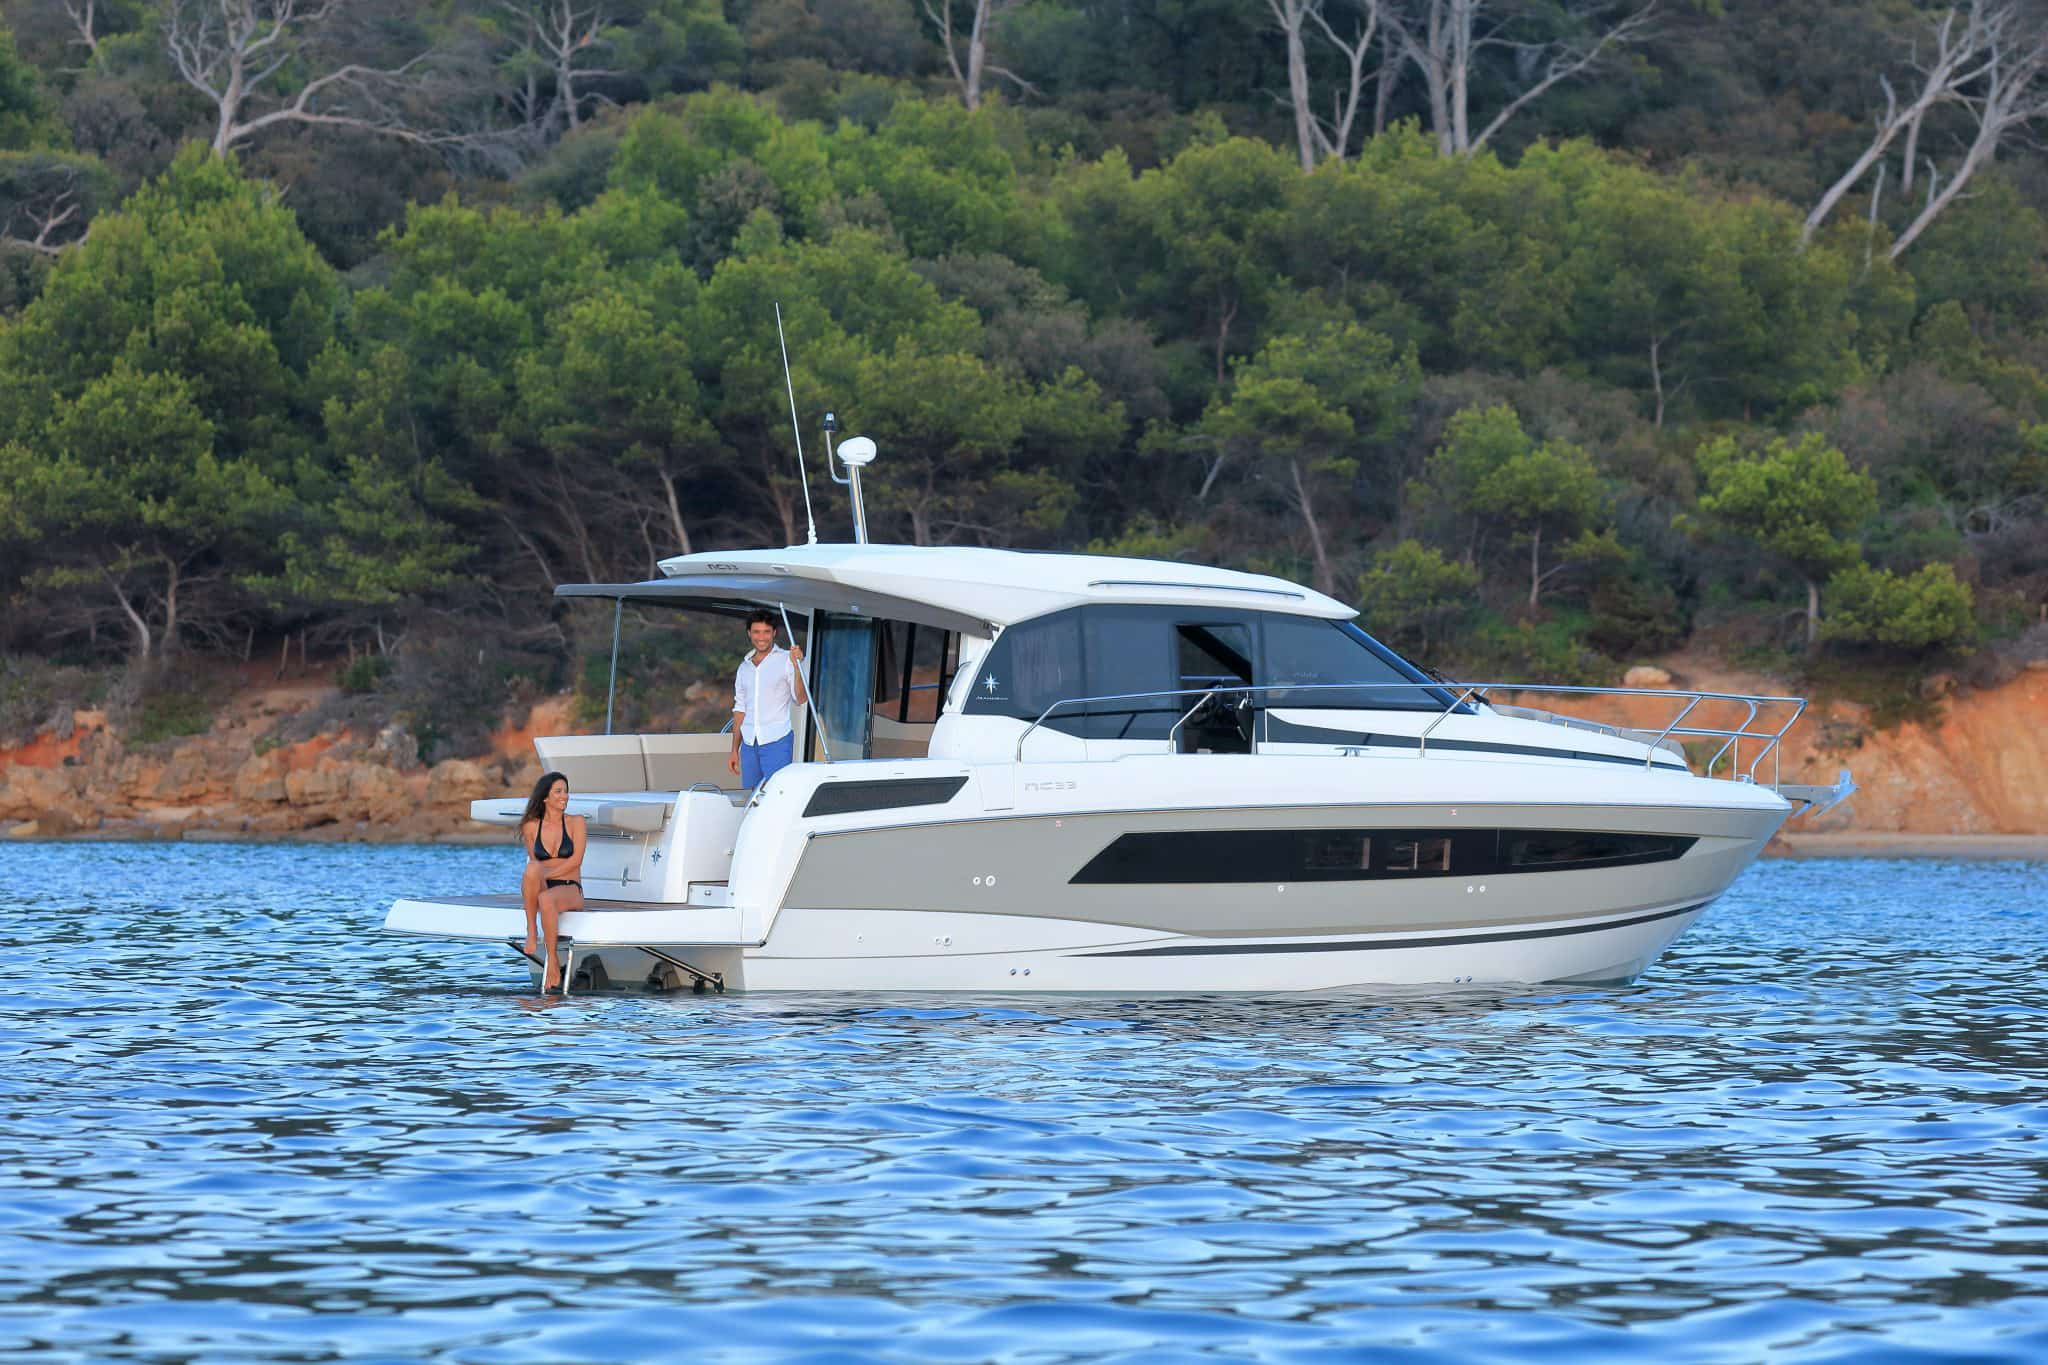 Choosing a Powerboat for Your Chesapeake Charter